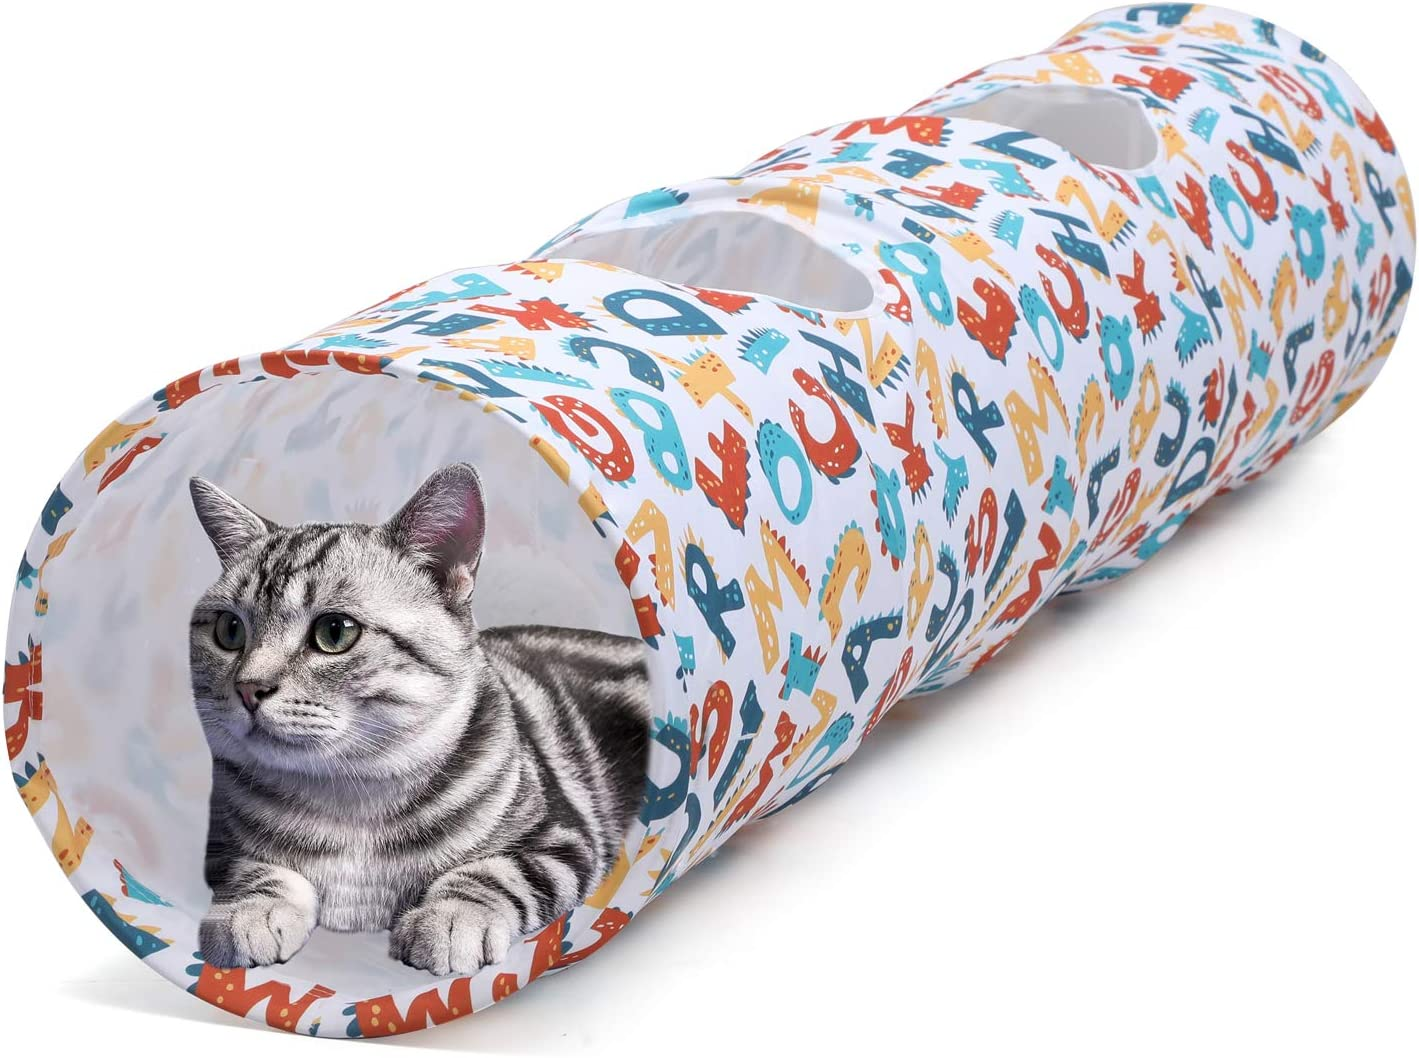 Collapsible Cat Kitty Tunnel Pet Toys Play Tunnels for Cat Kitty Puppy Rabbit Kitten D/&Y Cat Tunnel for Indoor